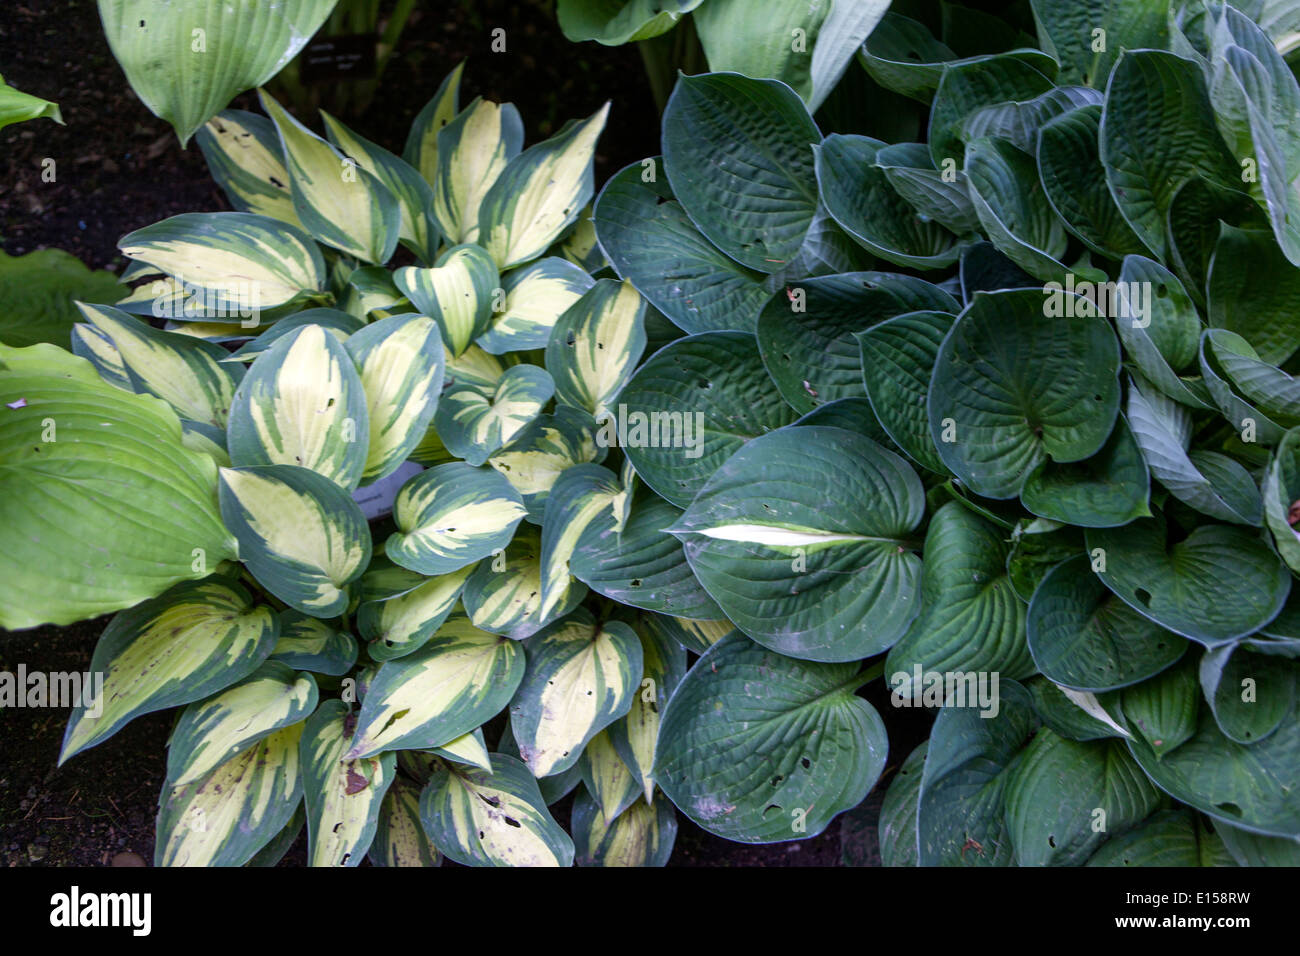 Hosta Plant In Shade Garden Variegated Leaves Stock Photo